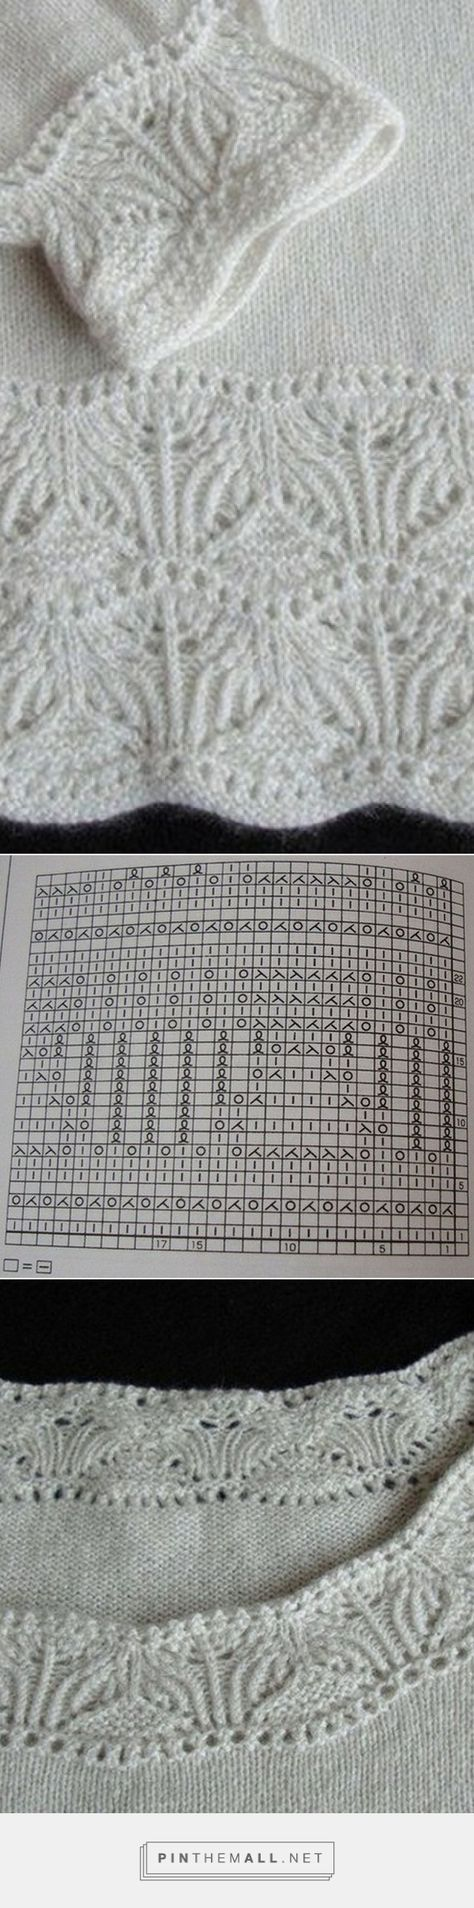 Lace knitting pattern worked as border on sleeve cuffs, neck and waist of a stockinette sweater; chart ~~